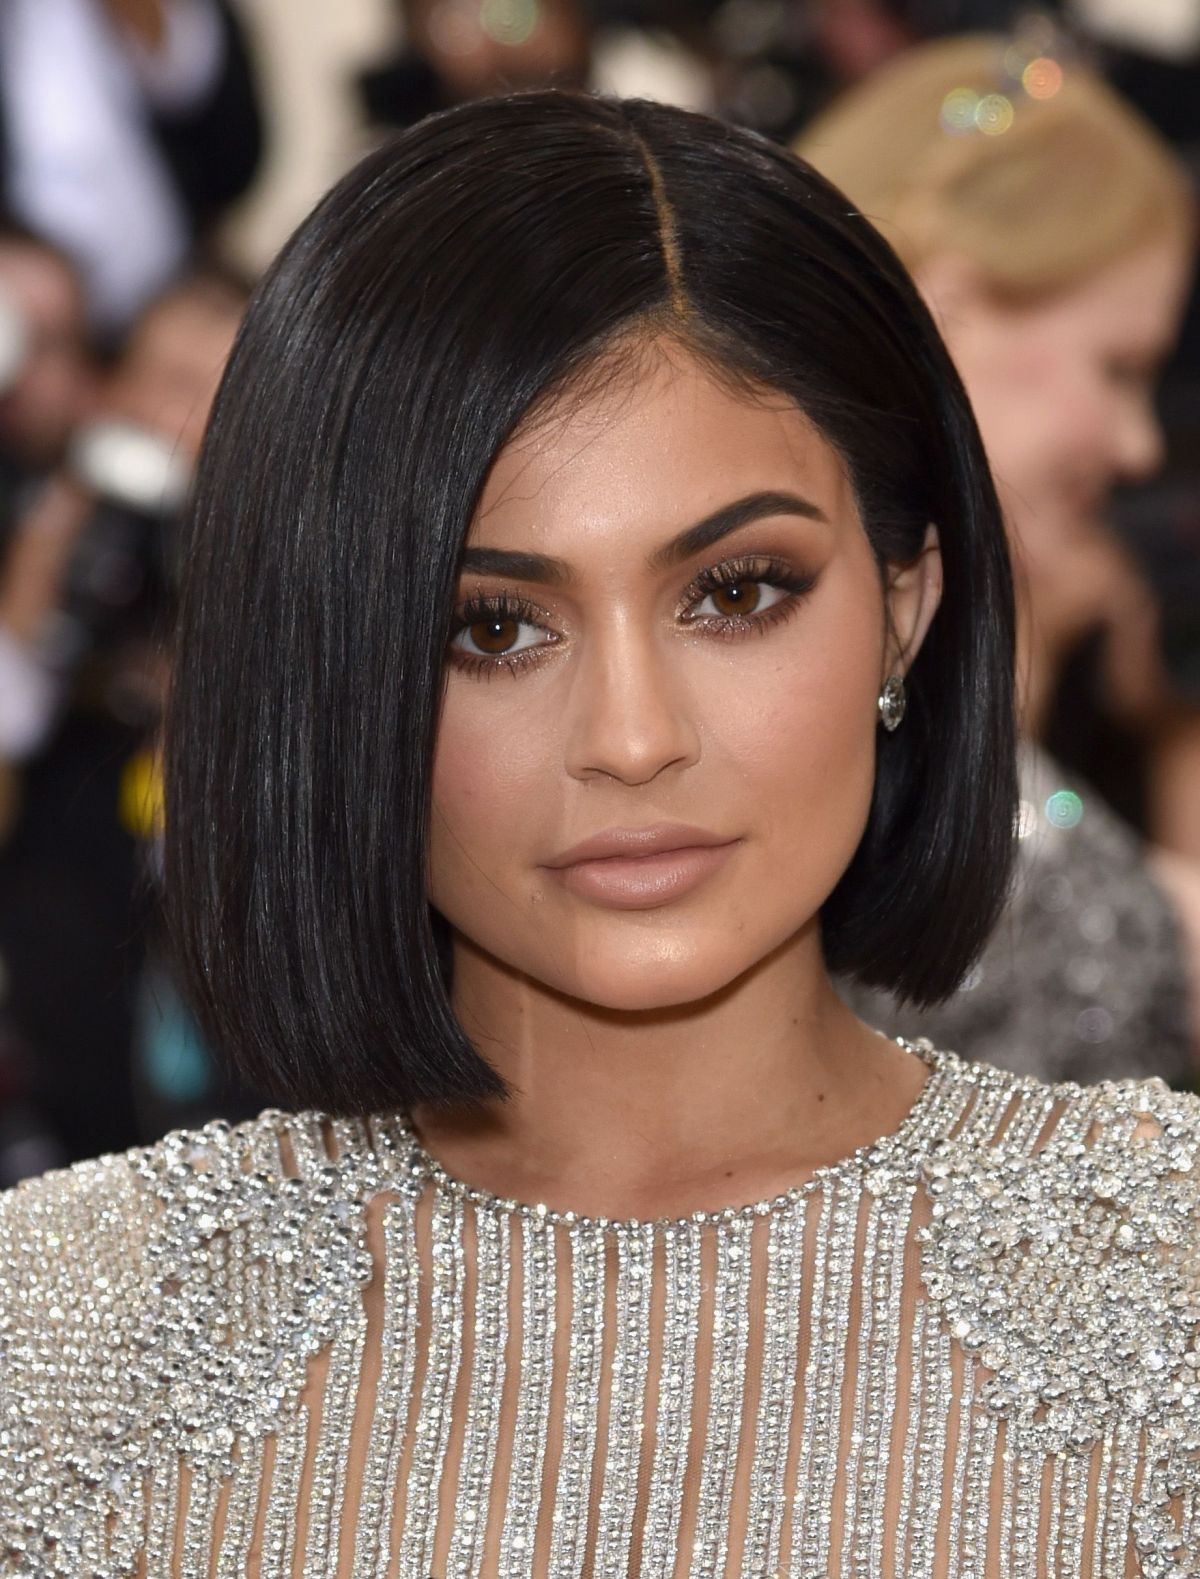 New Kylie Summer Lip Kit Swatches On Dark Skin: KYLIE JENNER At Costume Institute Gala 2016 In New York 05